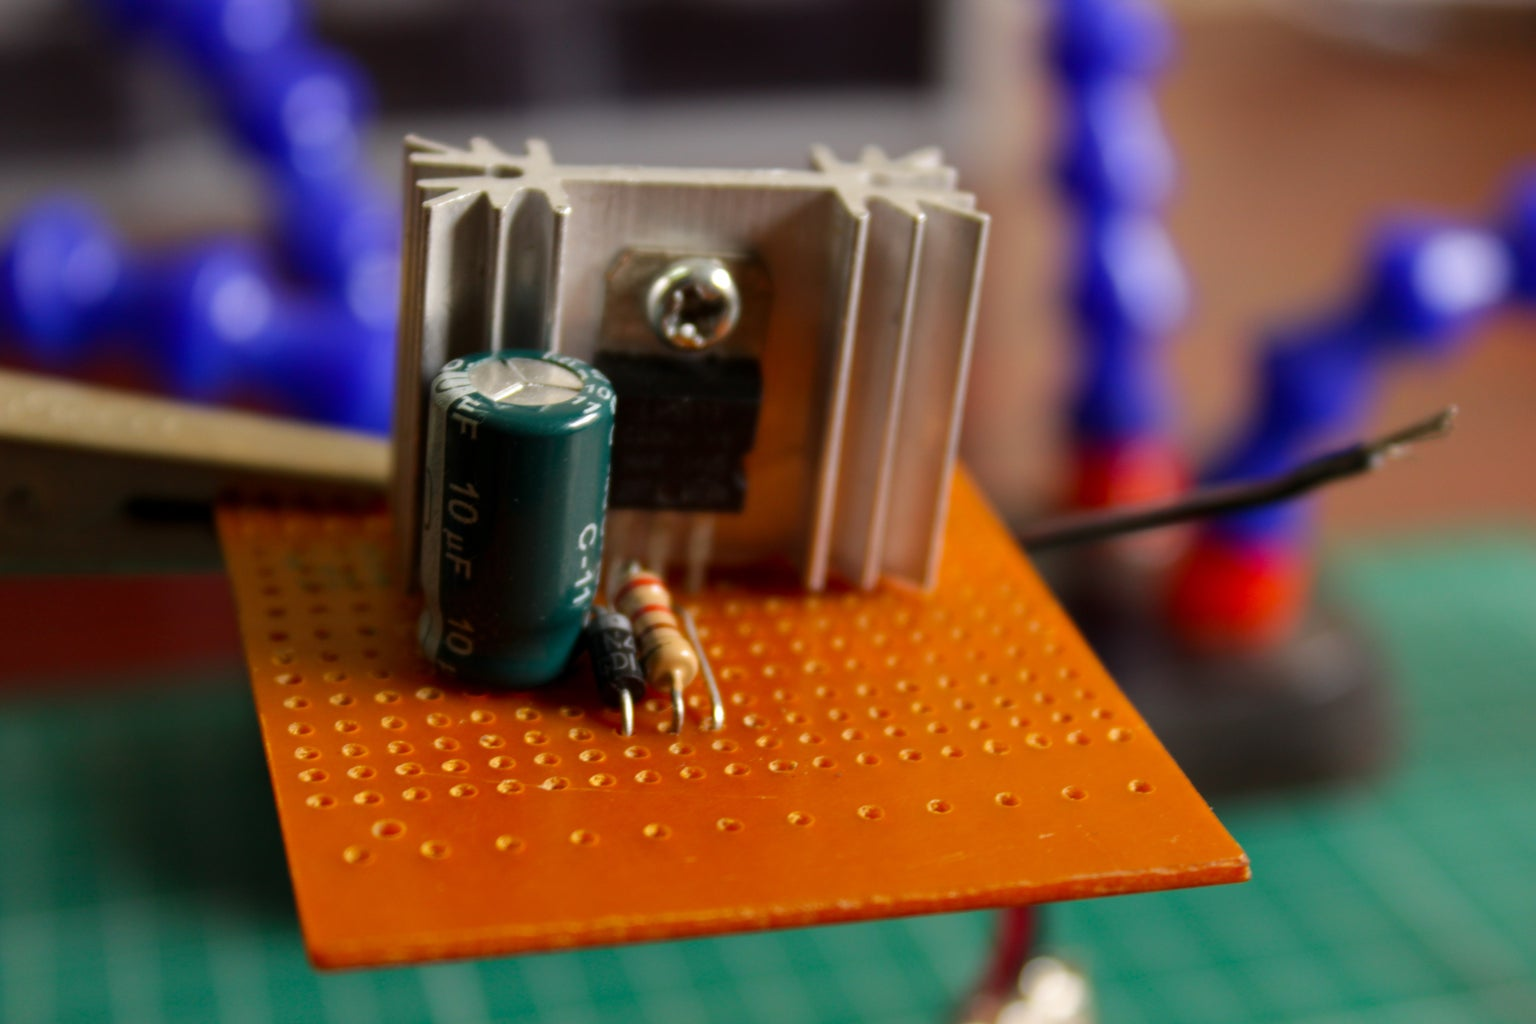 Add the Capacitor